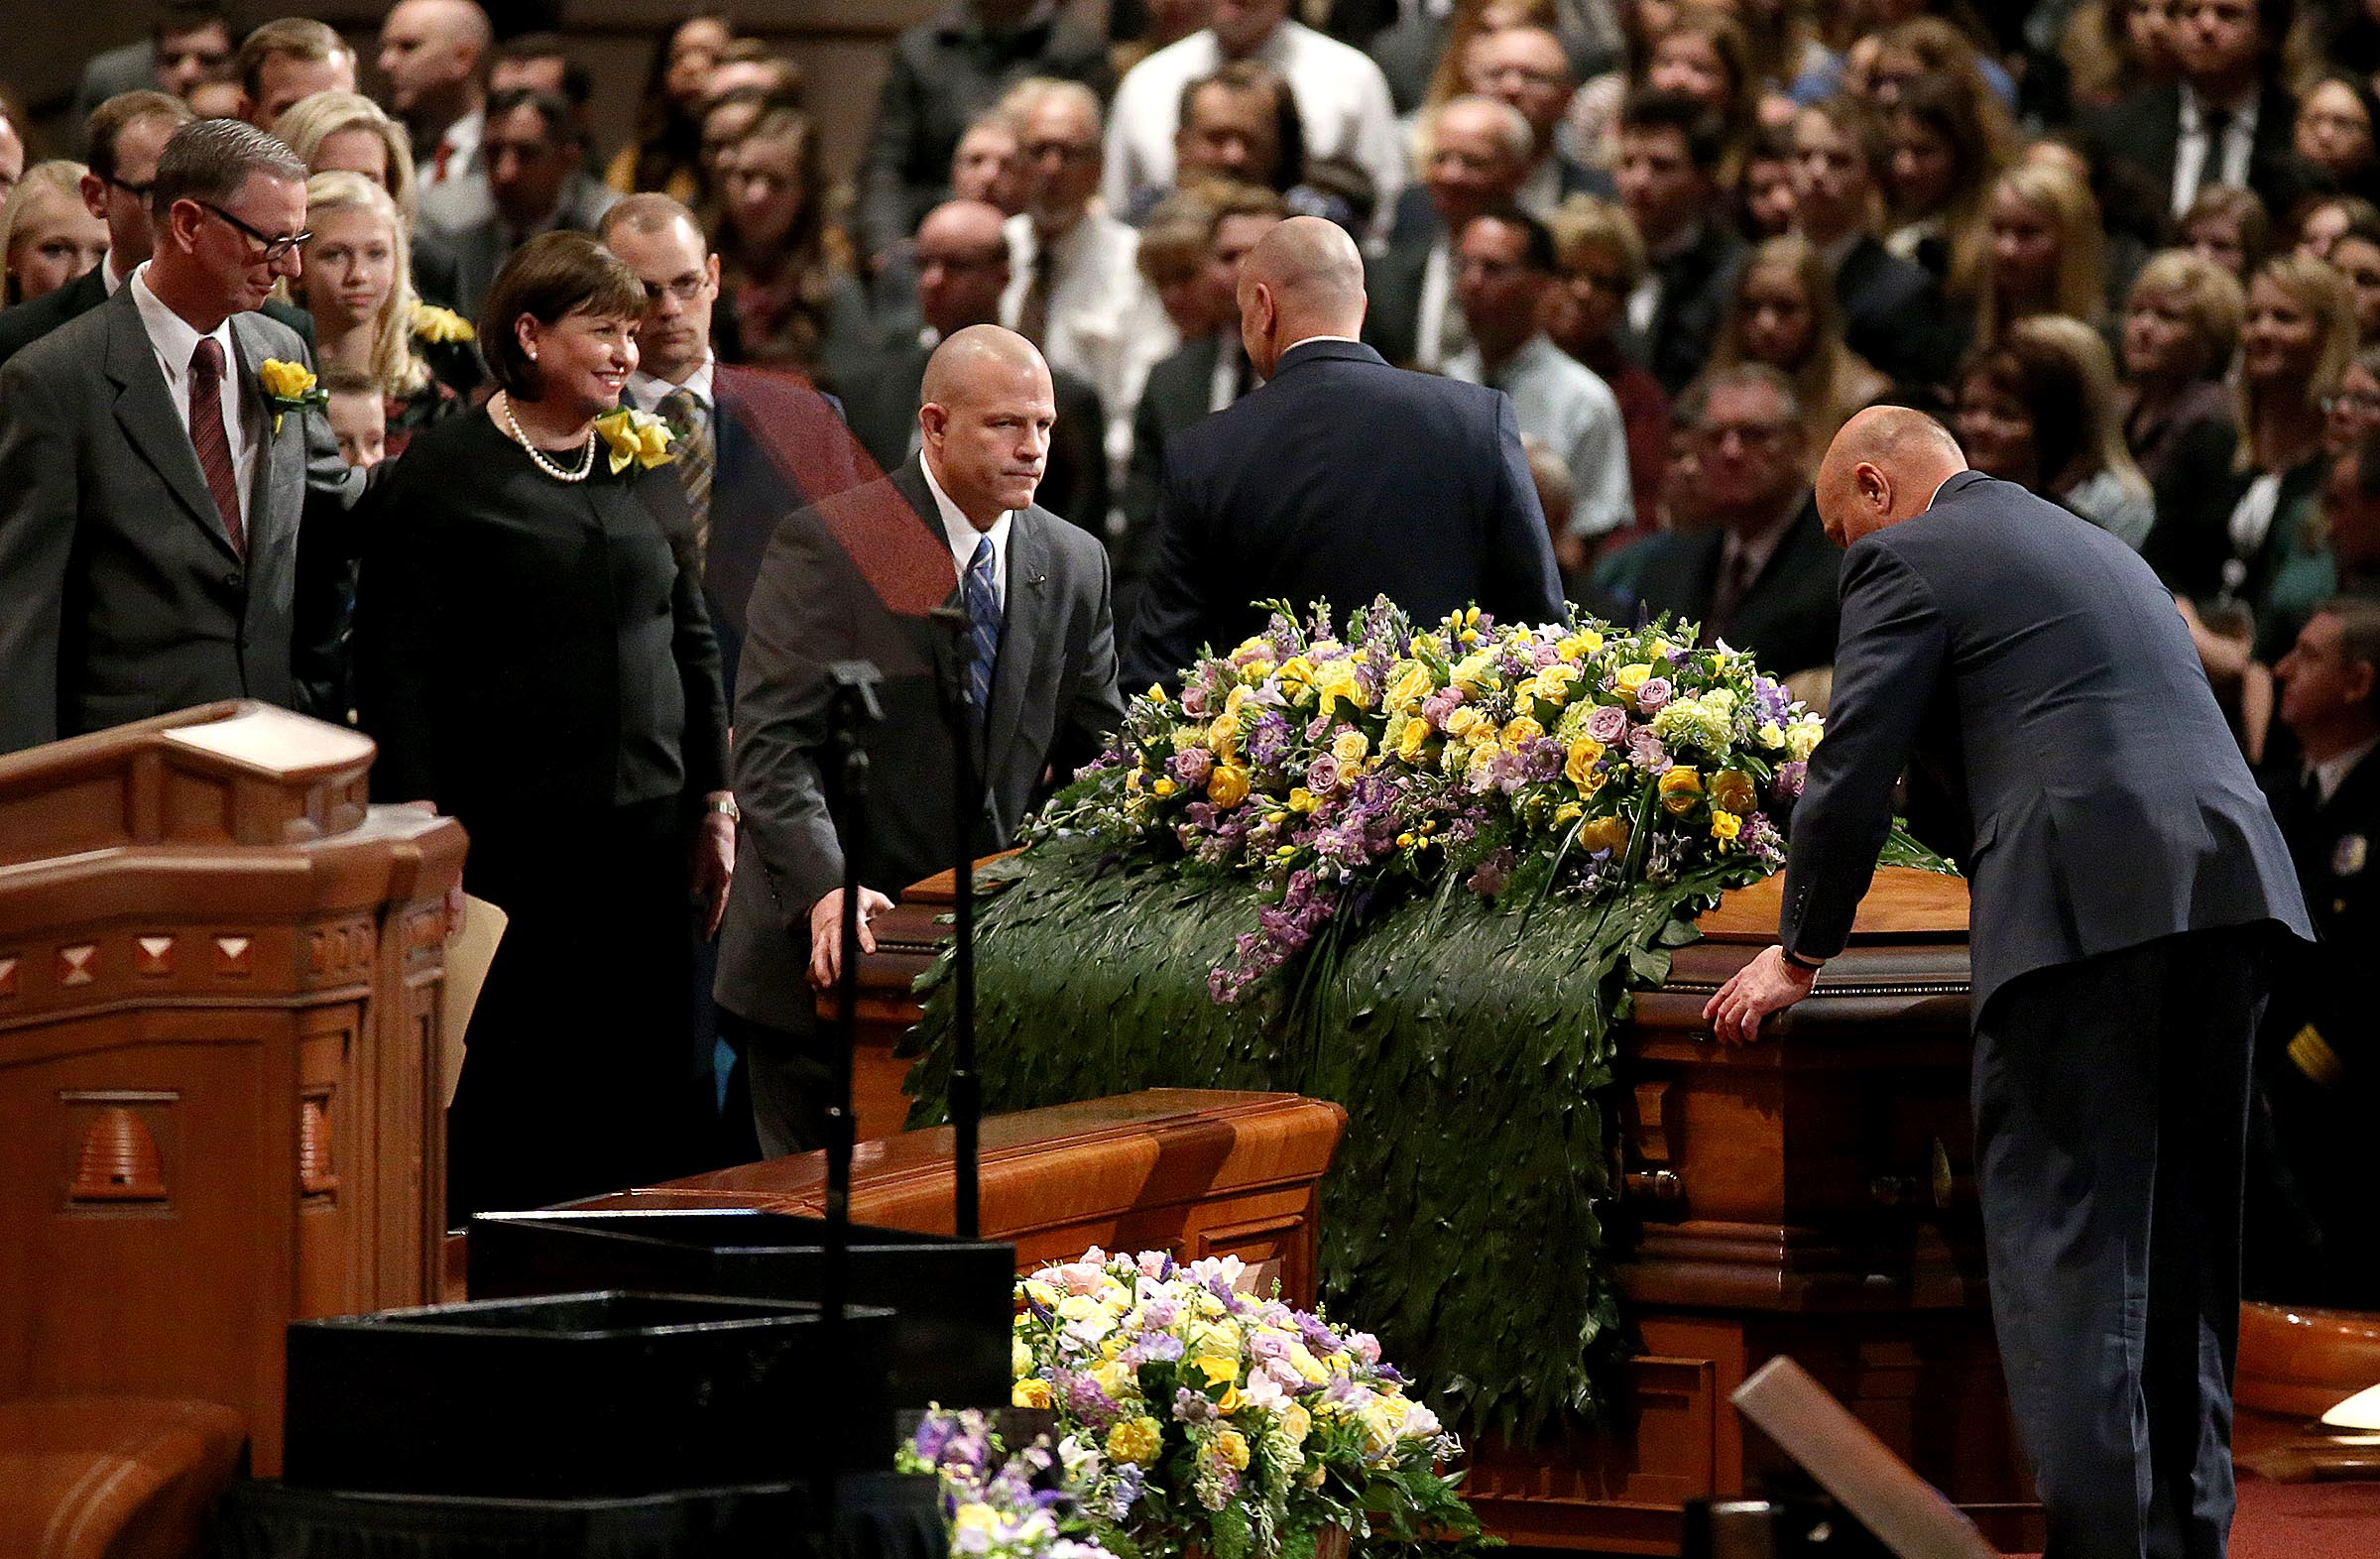 Members of President Thomas S. Monson's family watch as his casket is moved into the Conference Center in Salt Lake City on Friday, Jan. 12, 2018.